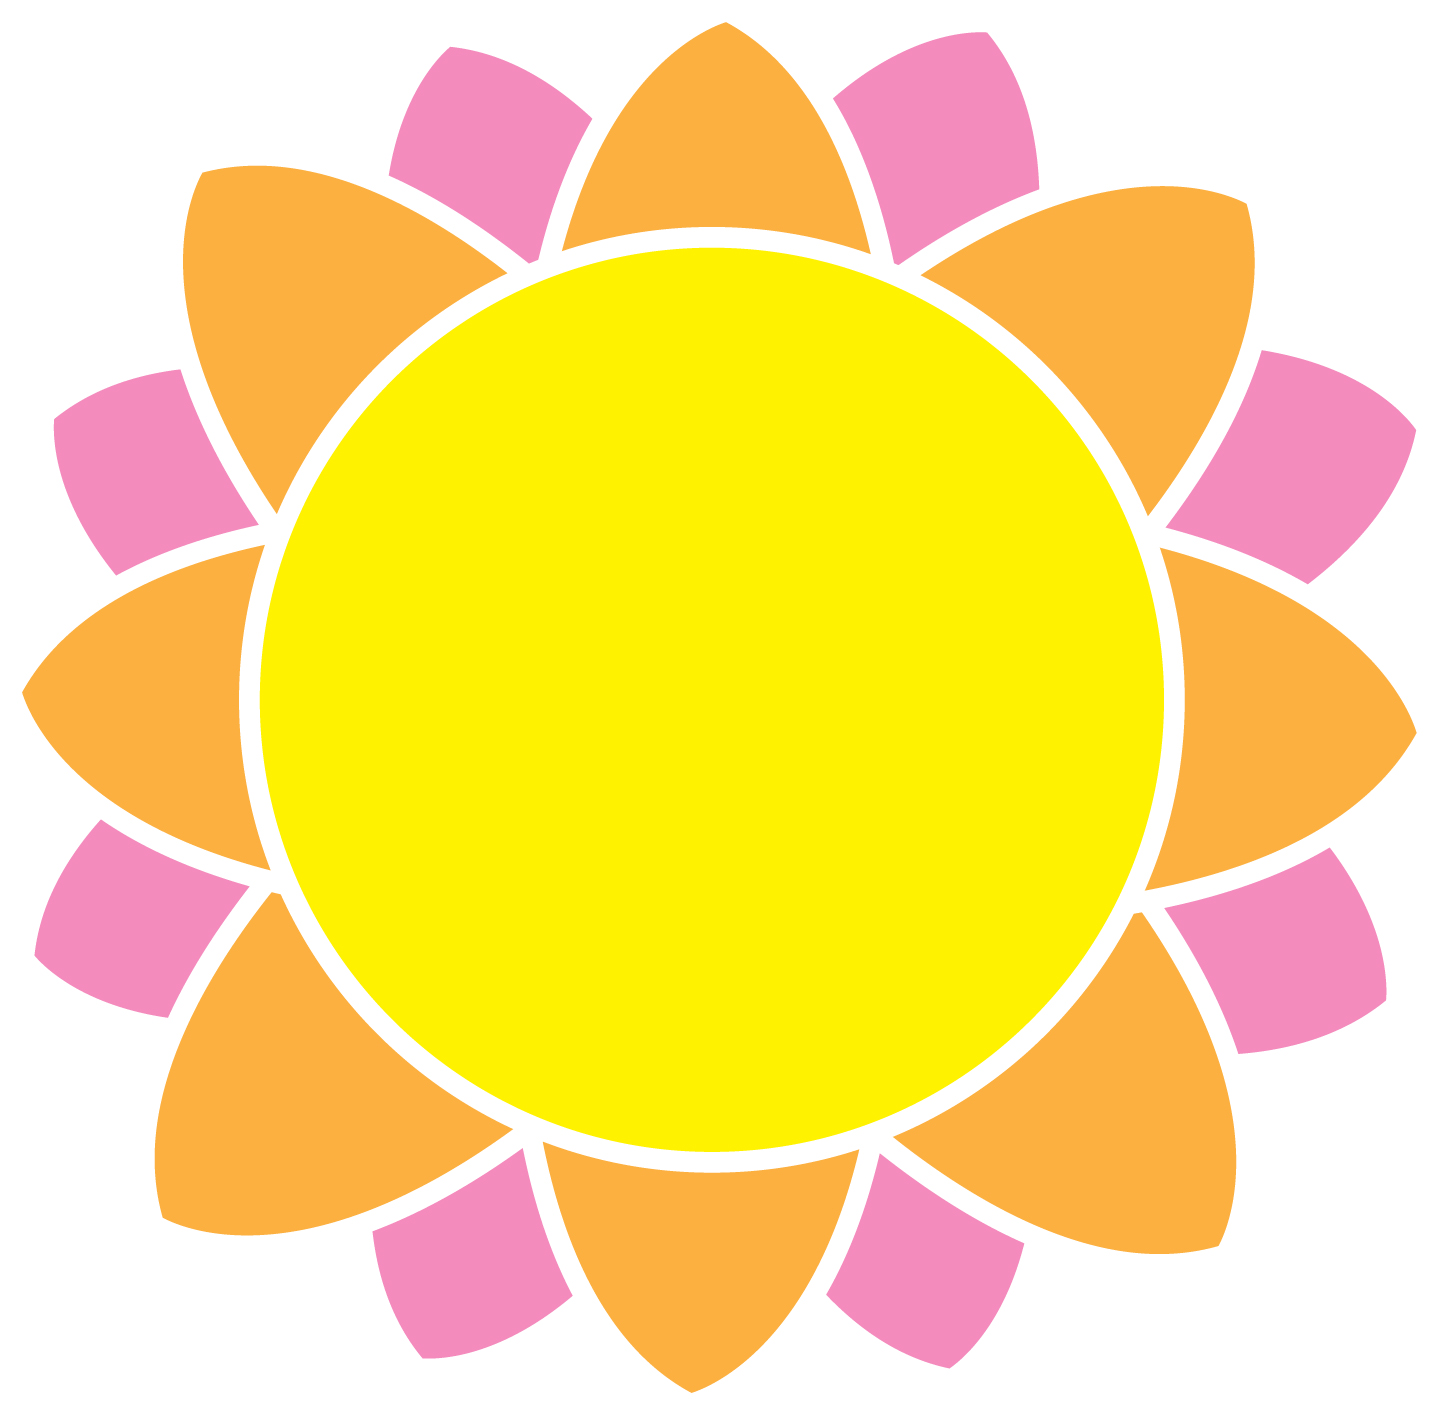 yellow green flower logo - photo #10